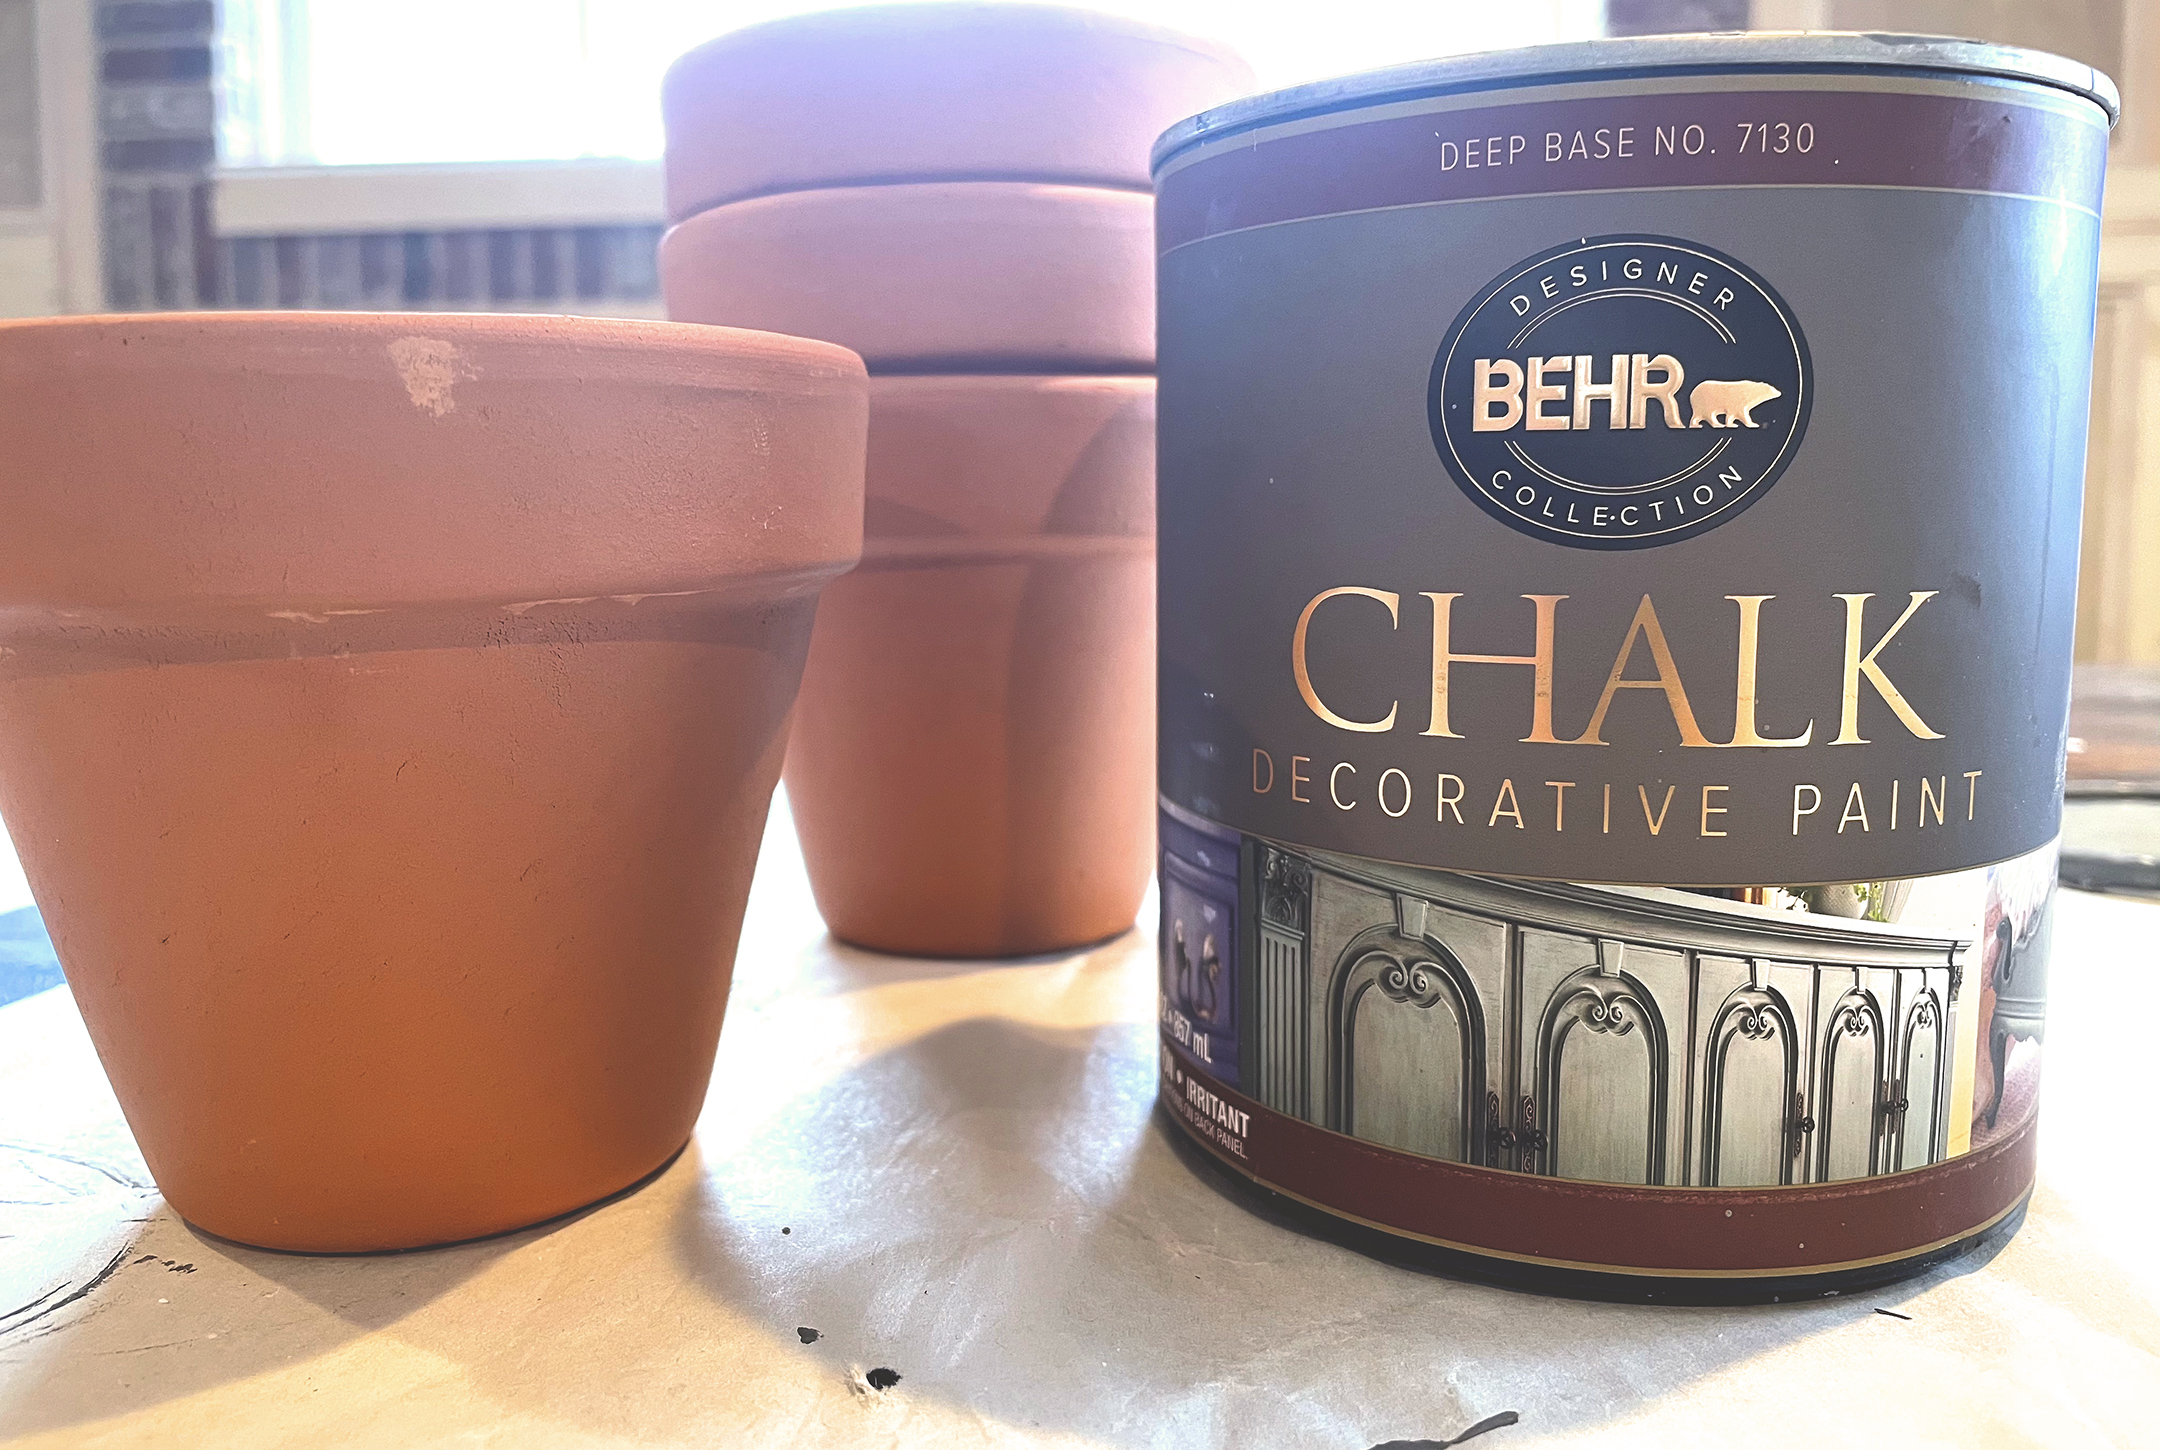 Boroughfare Home French Inspired Candles with Terra Cotta Pots